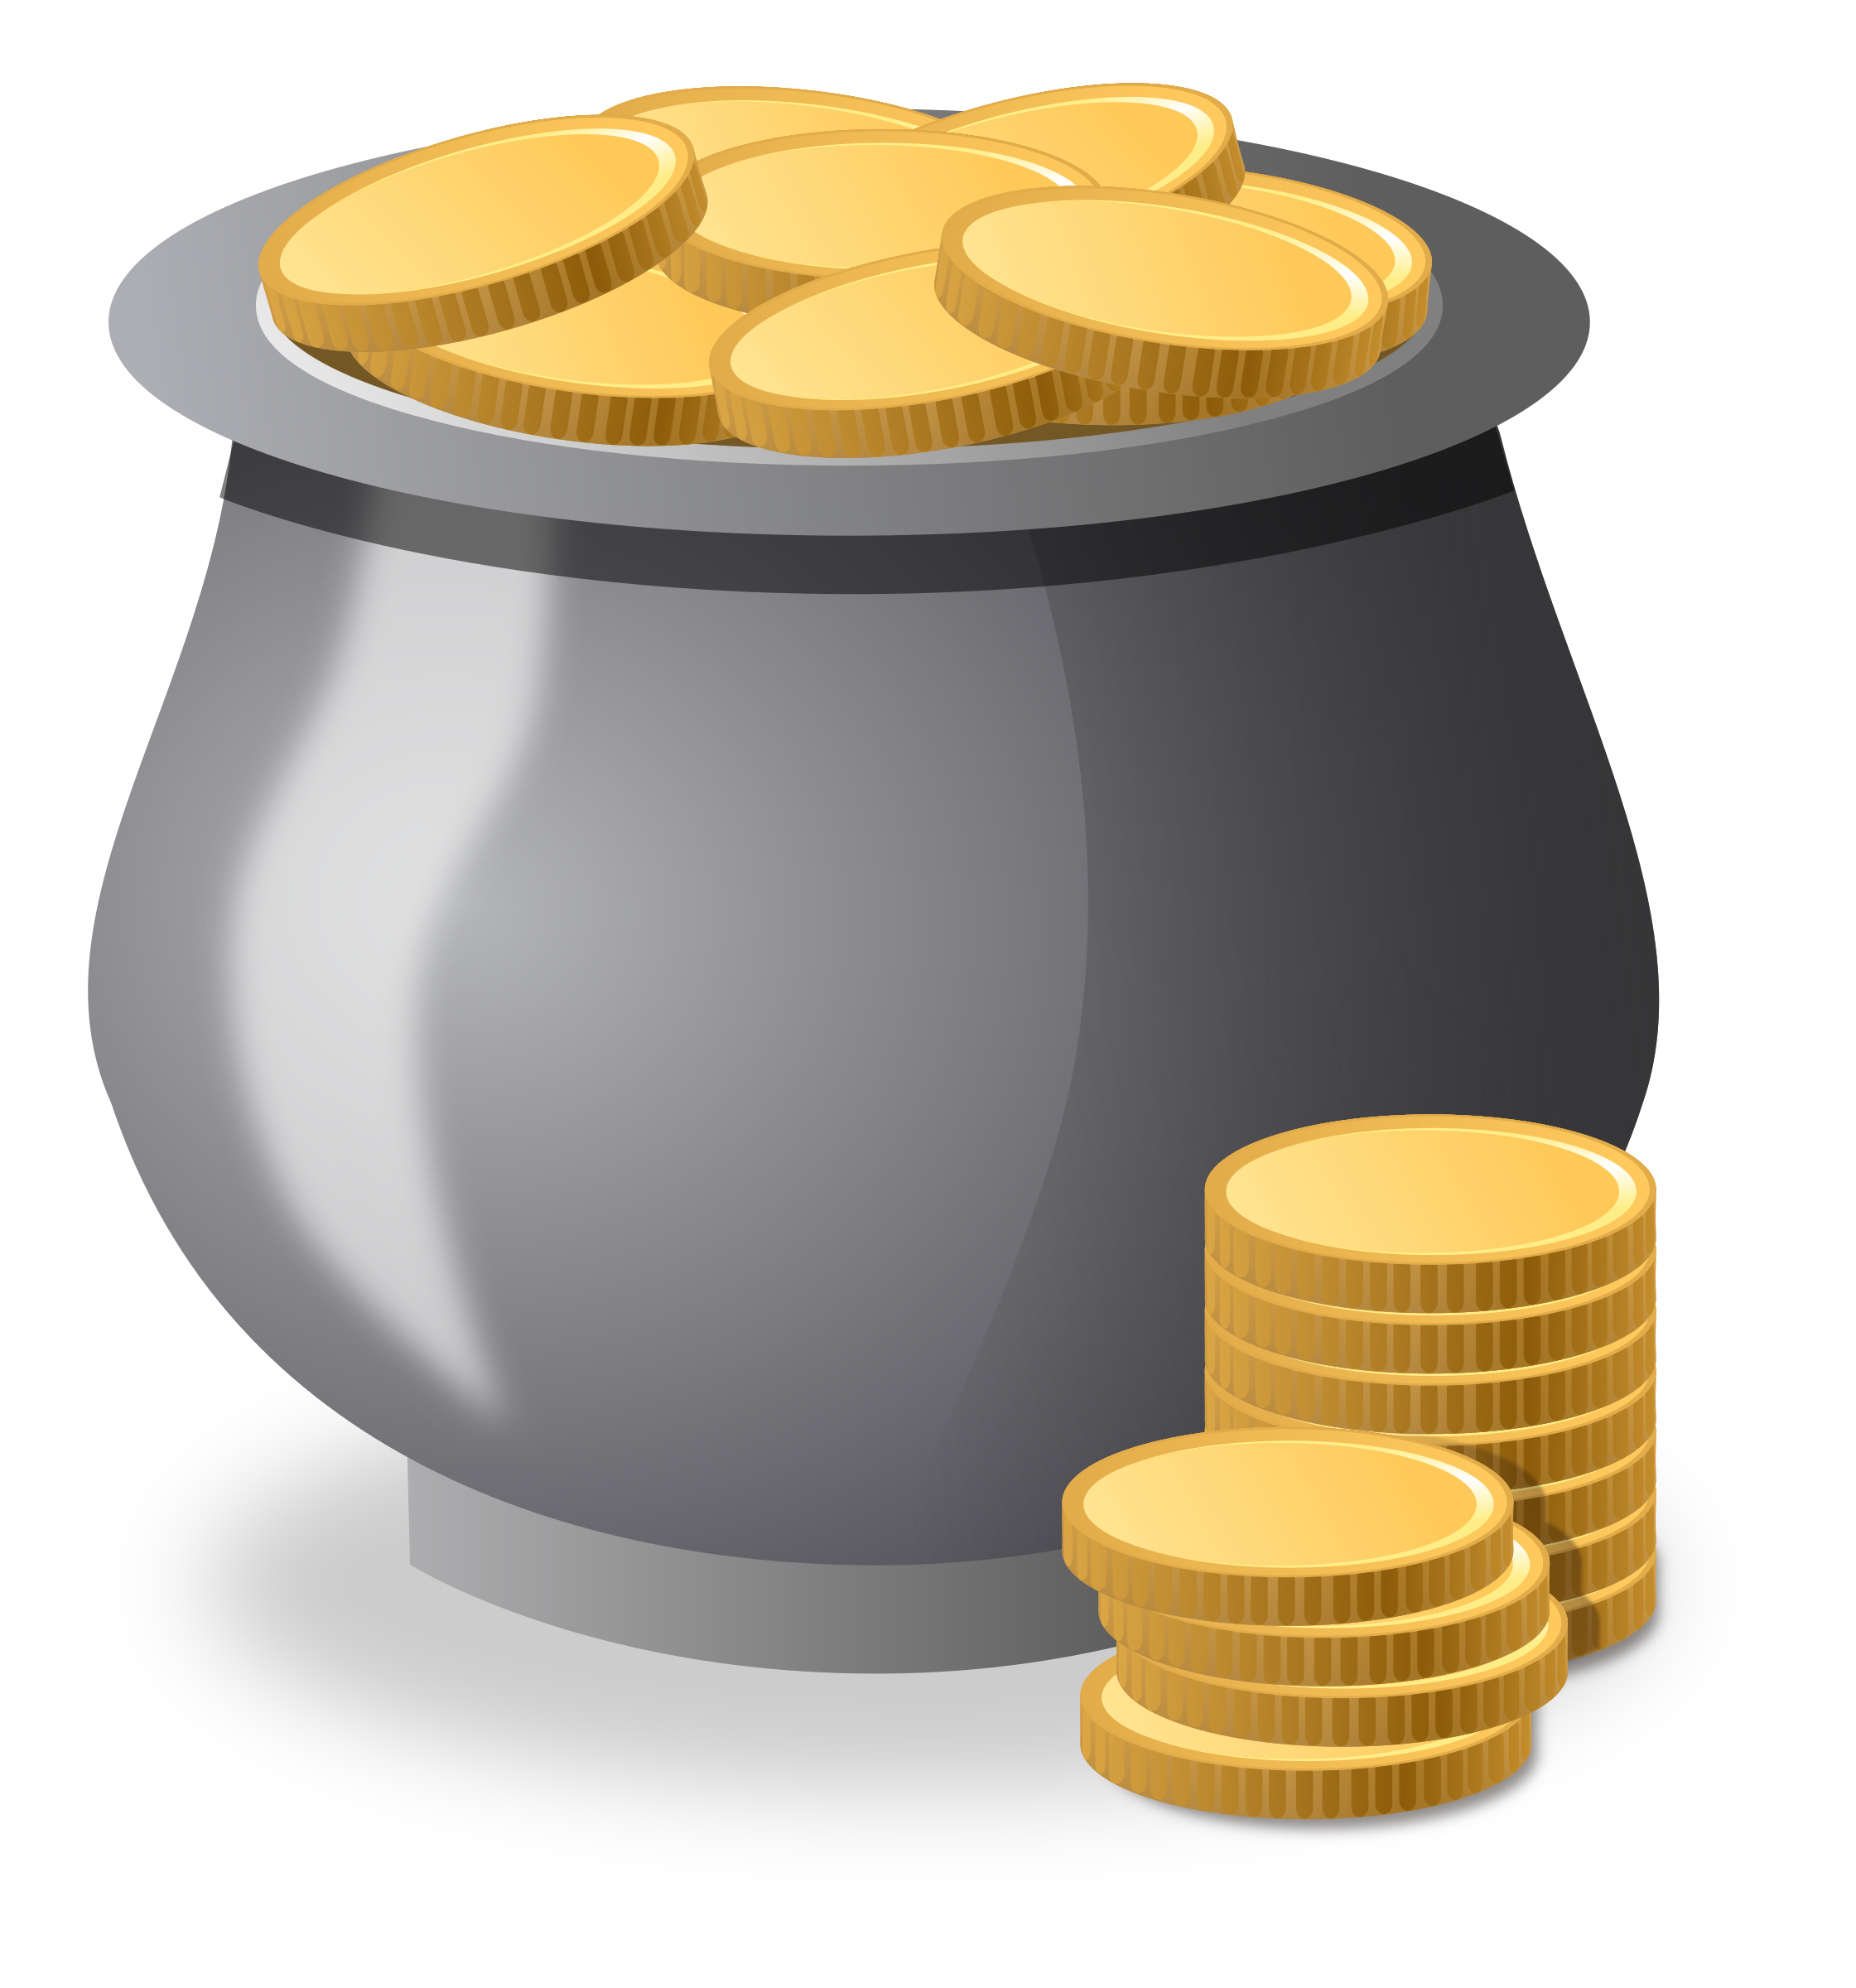 Coin clipart outline. Treasure money pencil and